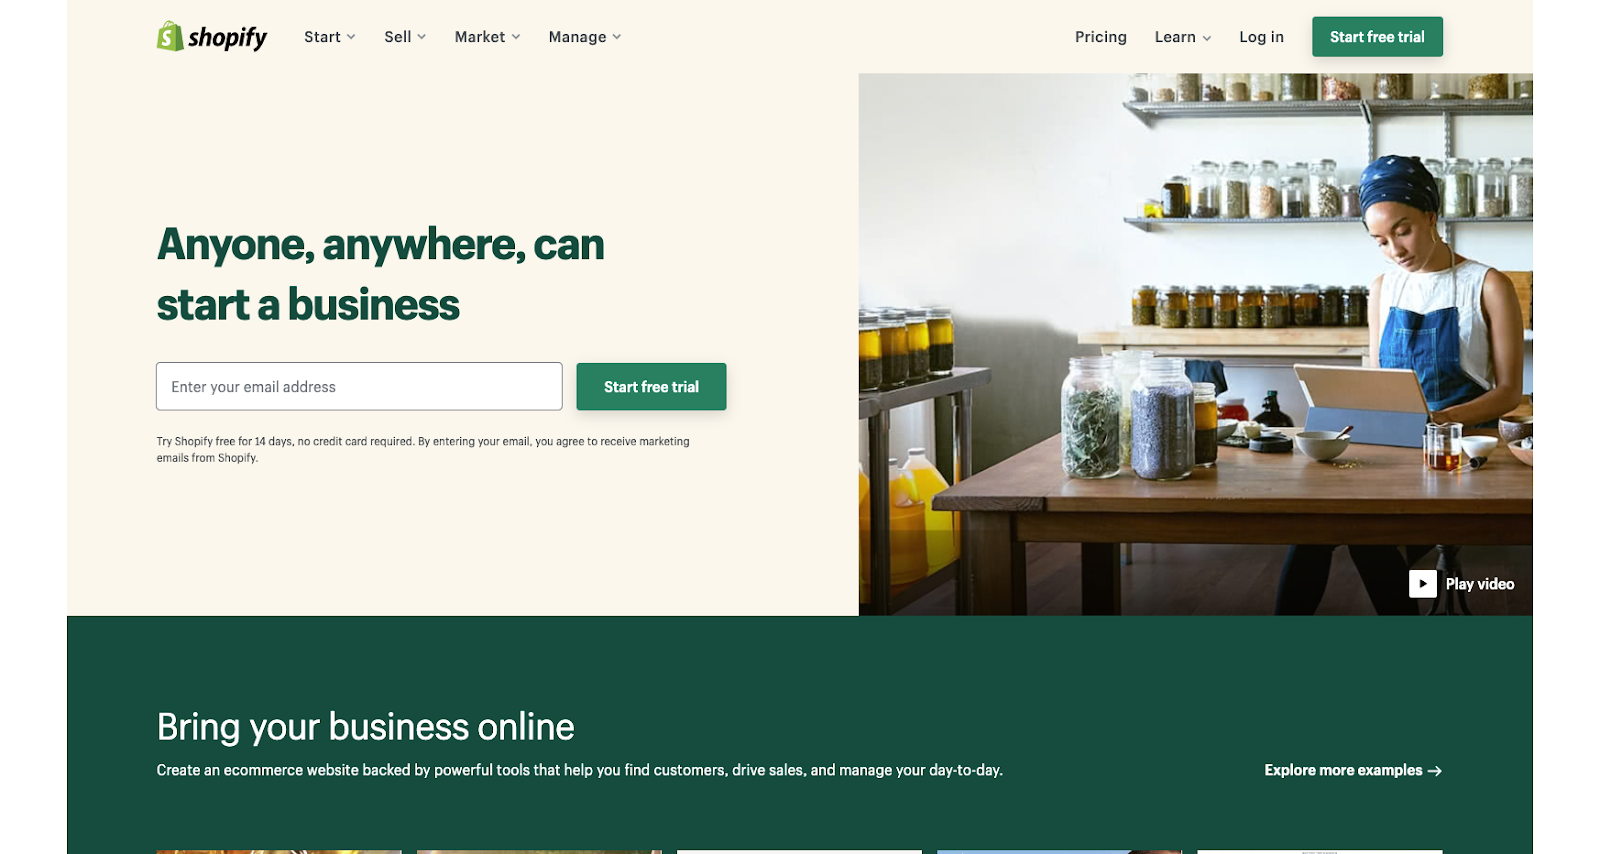 shopify homepage anyone anywhere can start a business